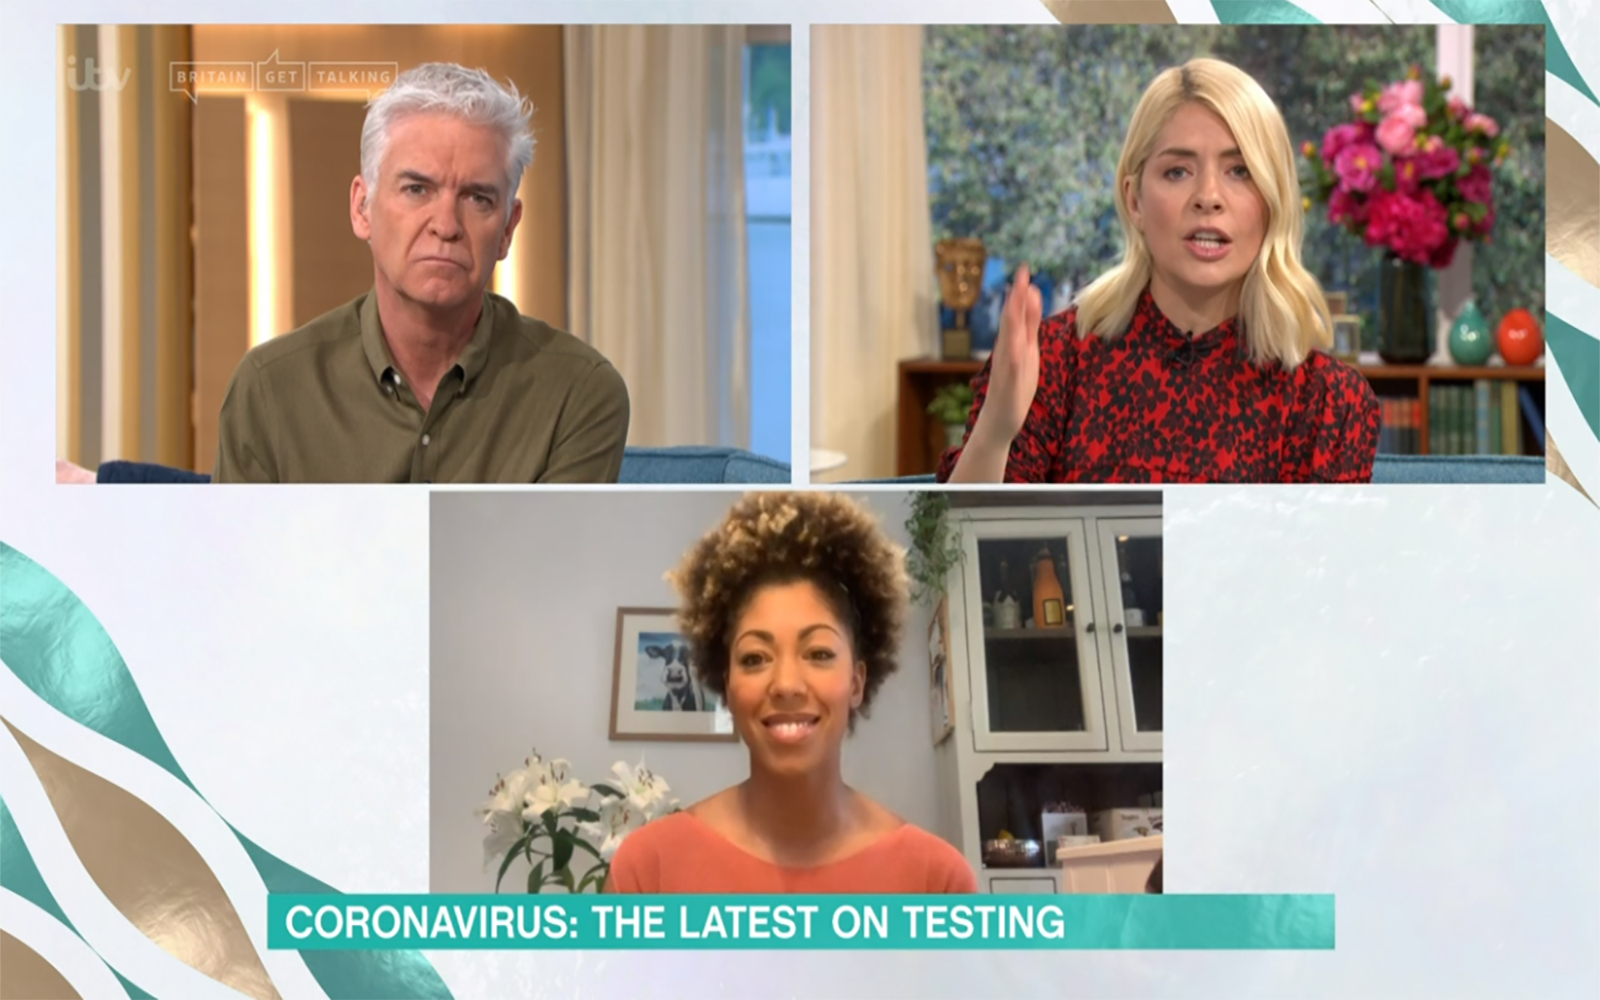 Holly Willoughby slams Boris Johnson for not 'delivering on promises' amid coronavirus crisis